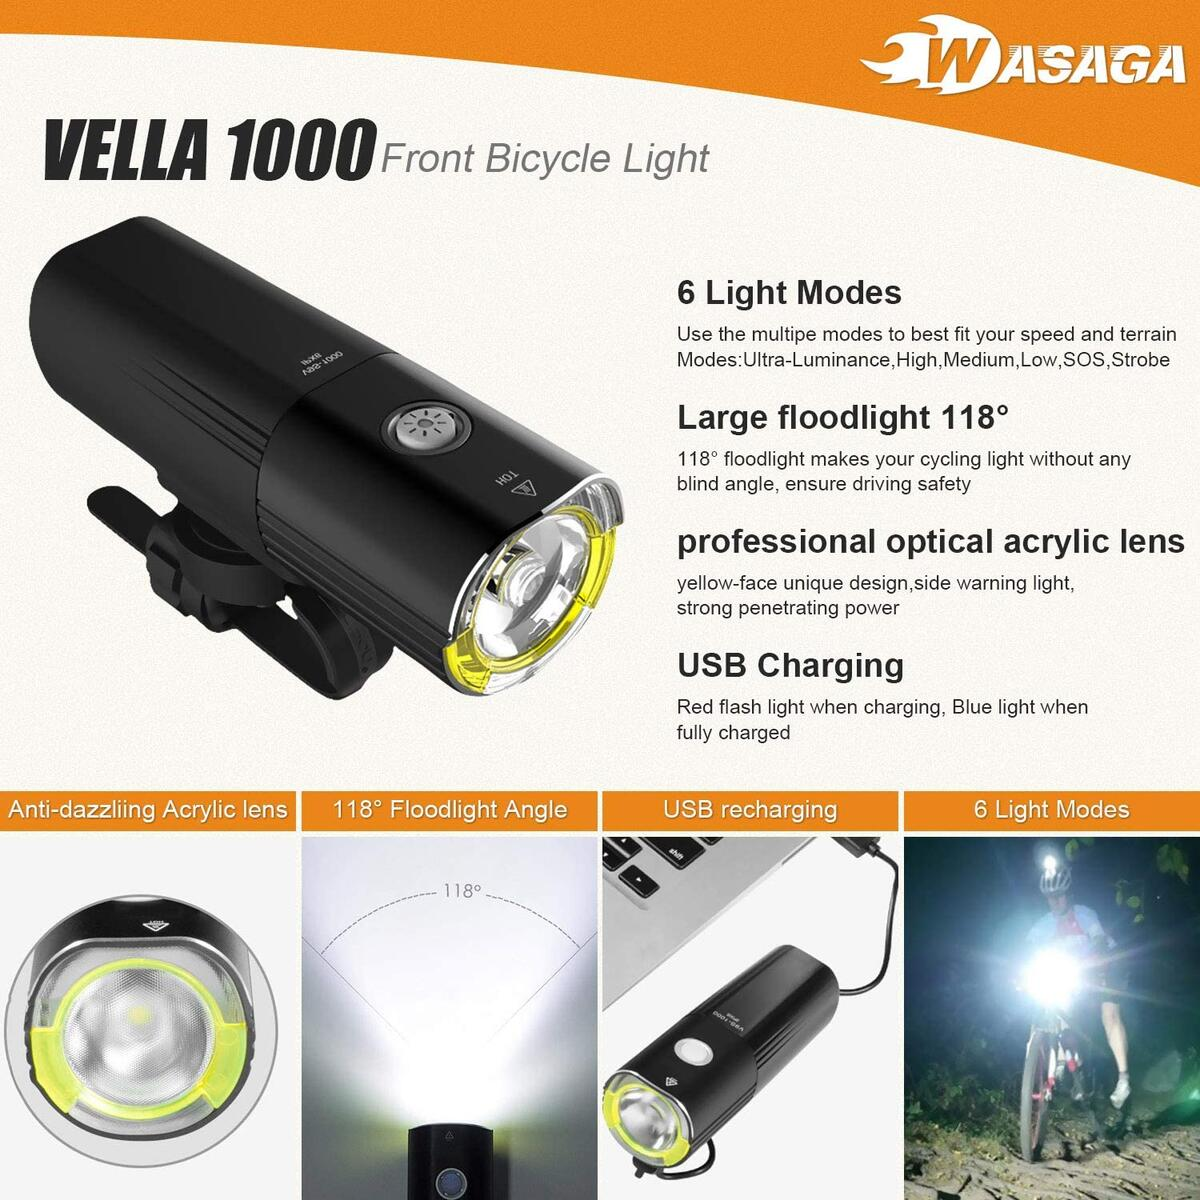 WASAGA Vella 1000 Bike Light Front and Back Bicycle Lights USB Headlight & Tail Lights for Commuters, Road Cyclists & Mountain Bikers